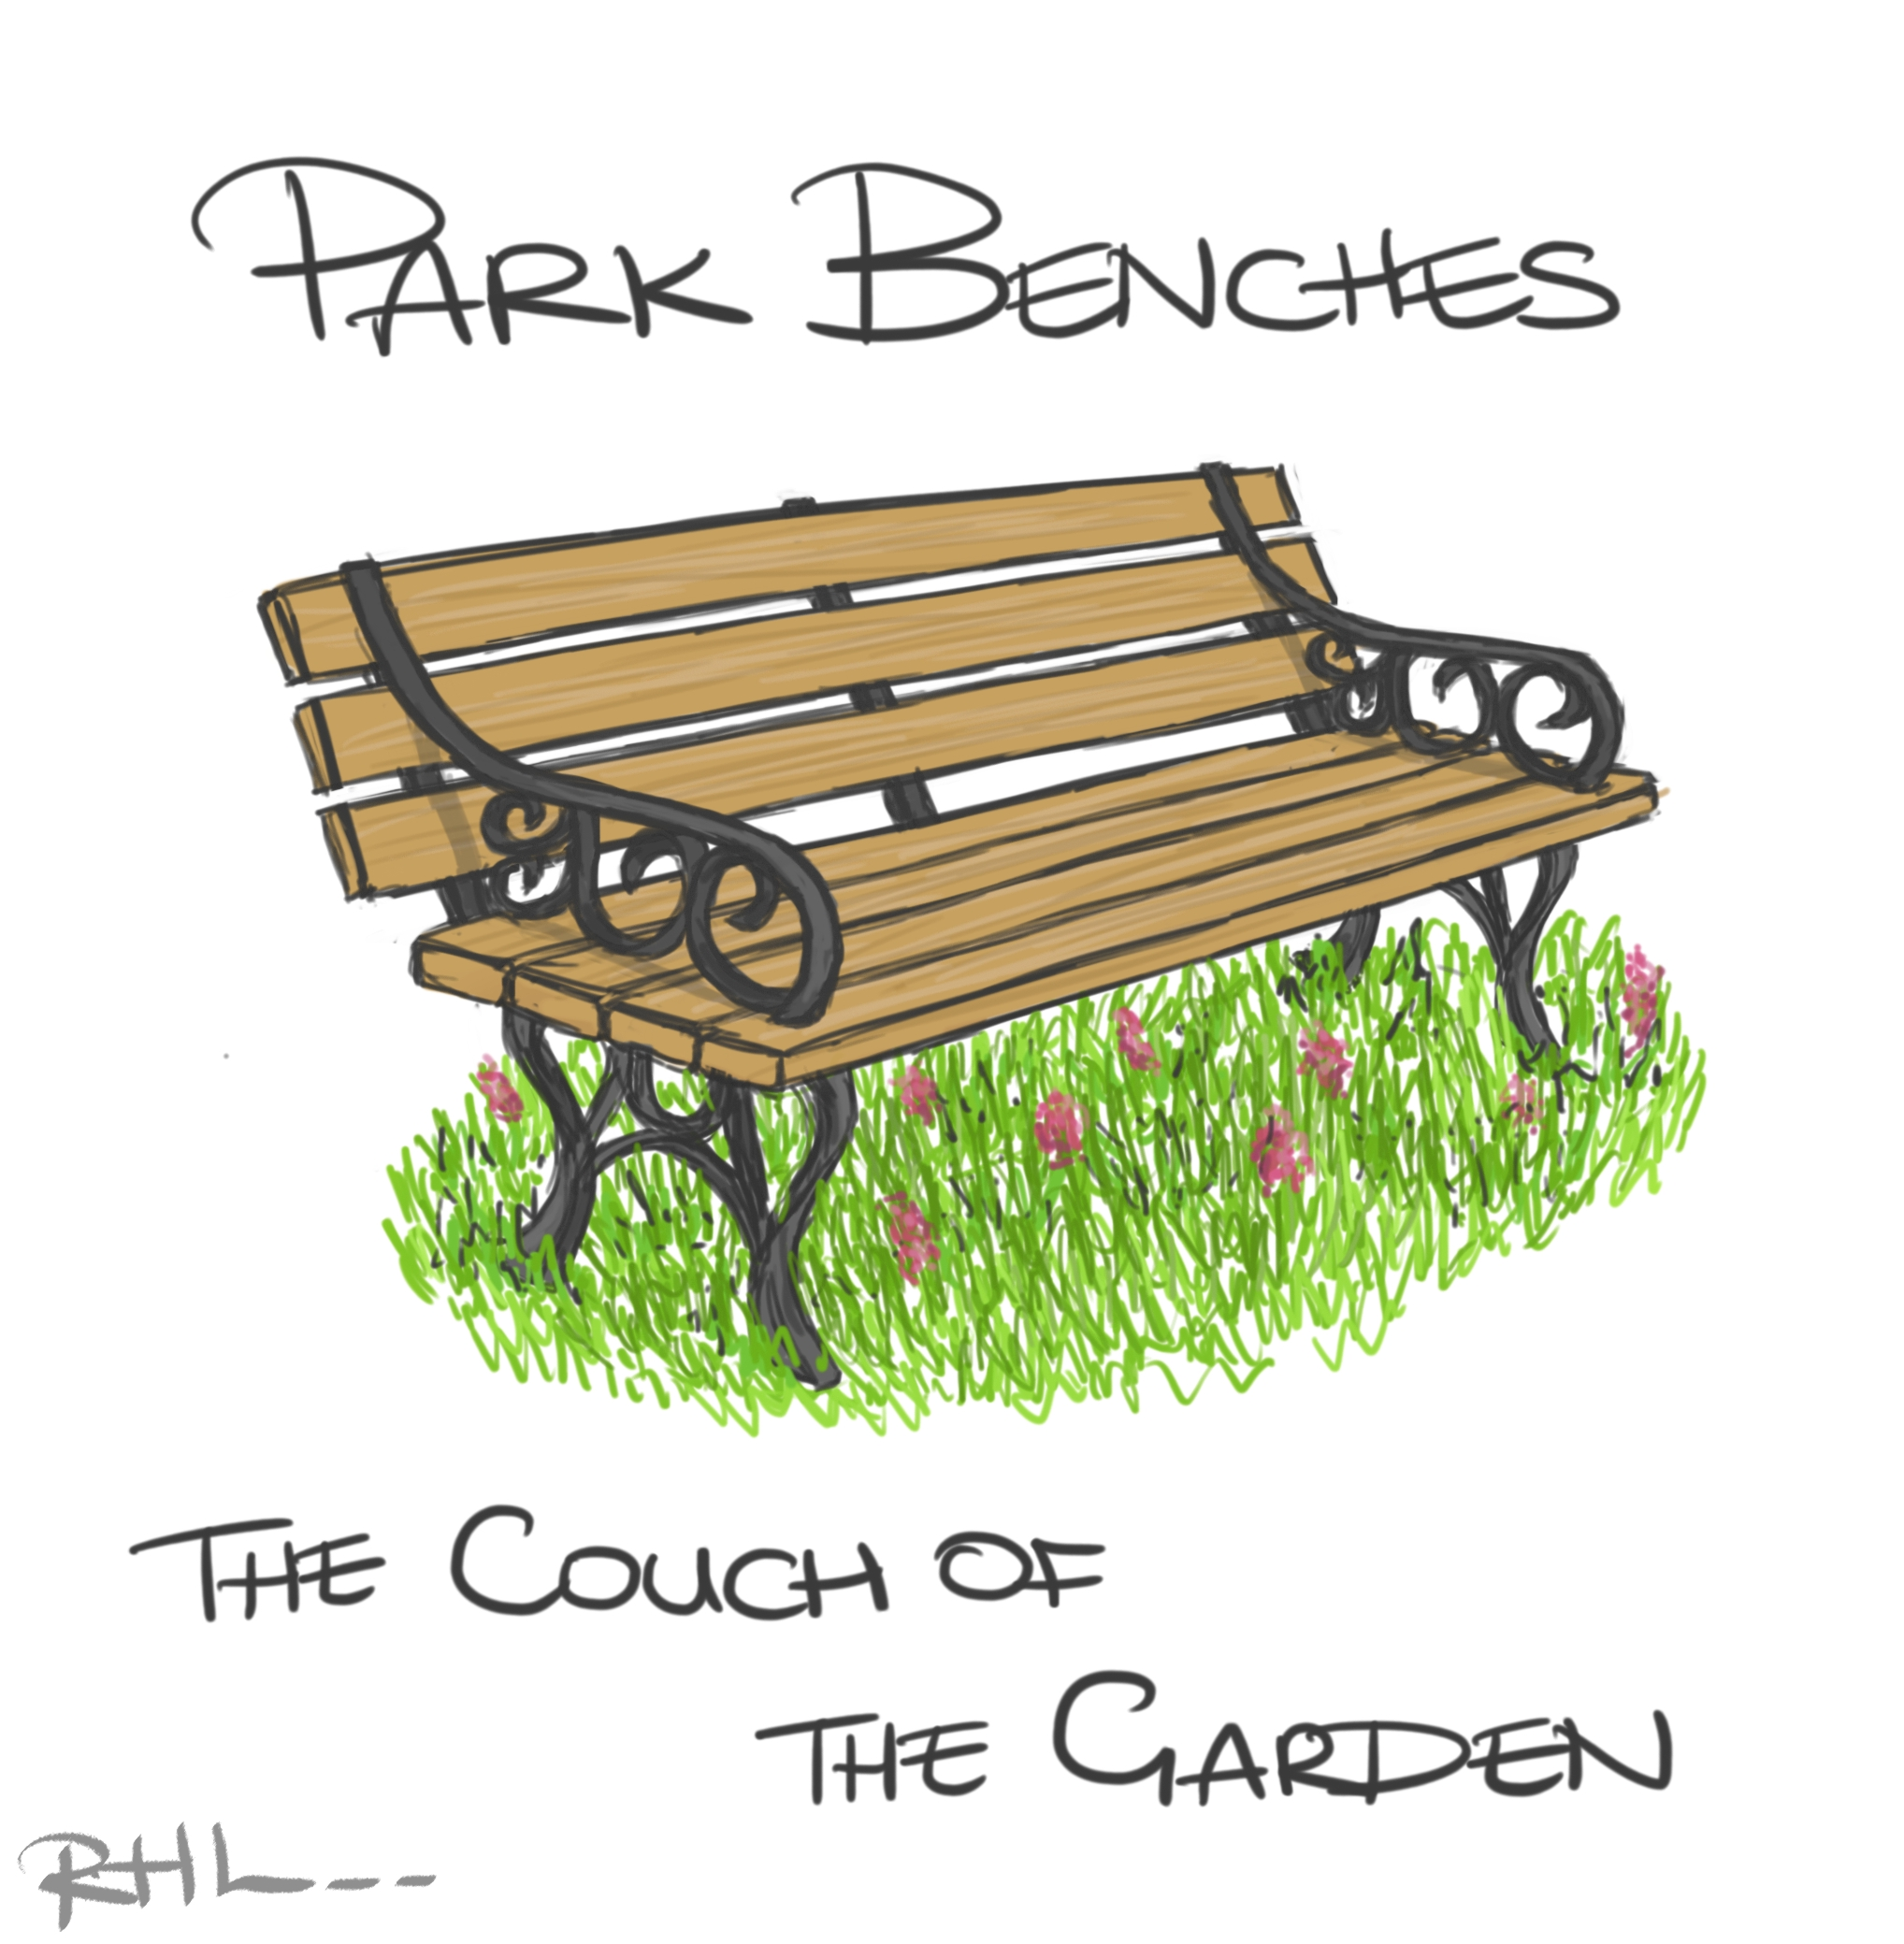 The Couch of the Garden